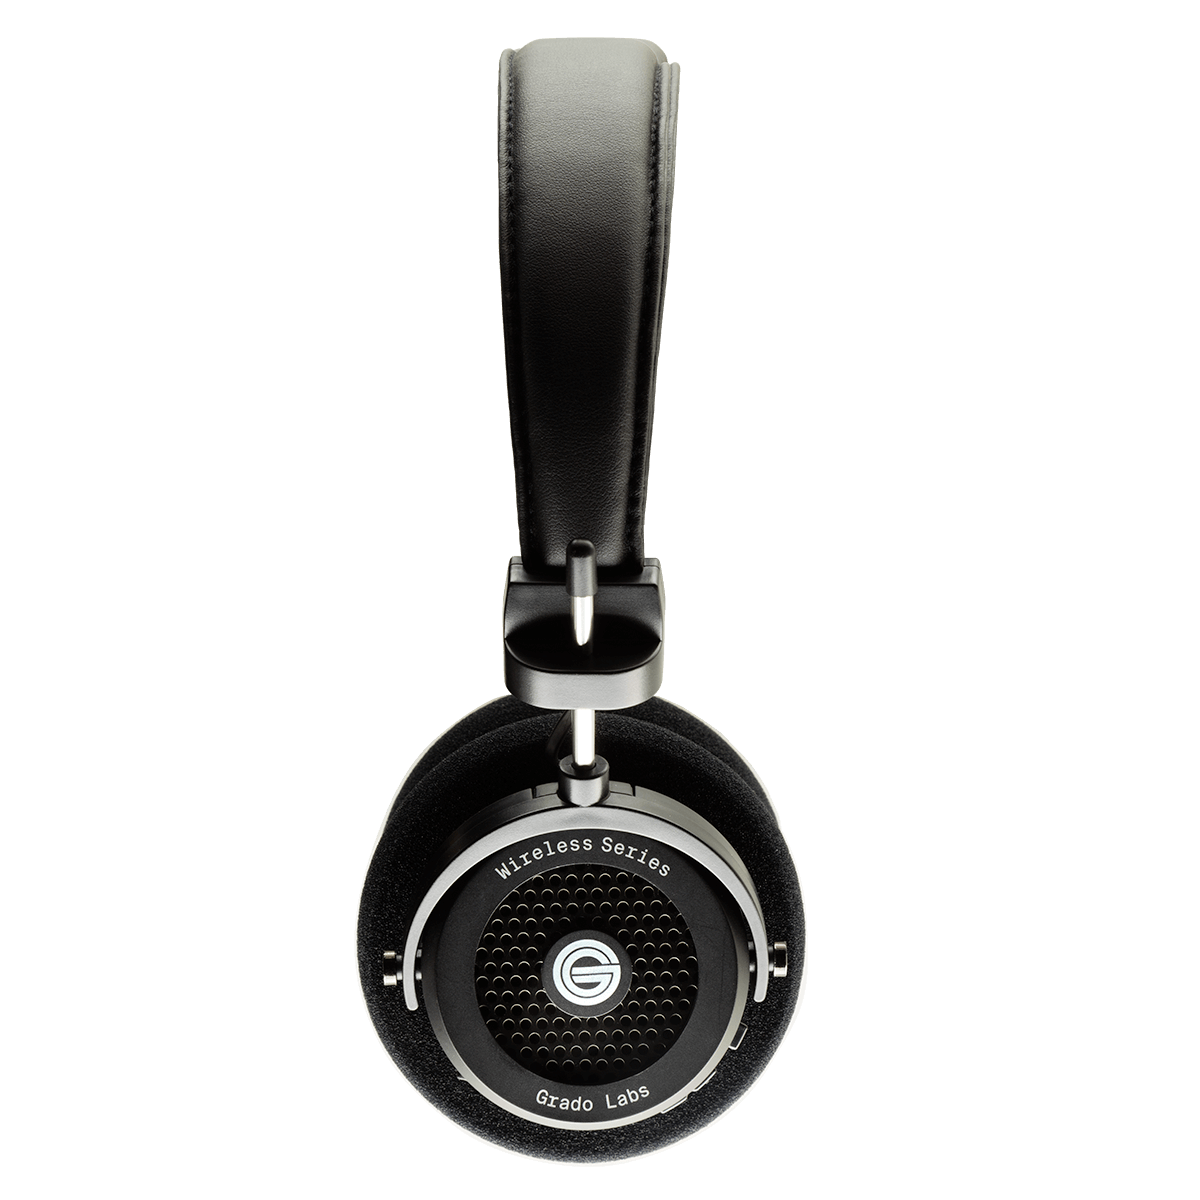 Grado Wireless Serie GW100